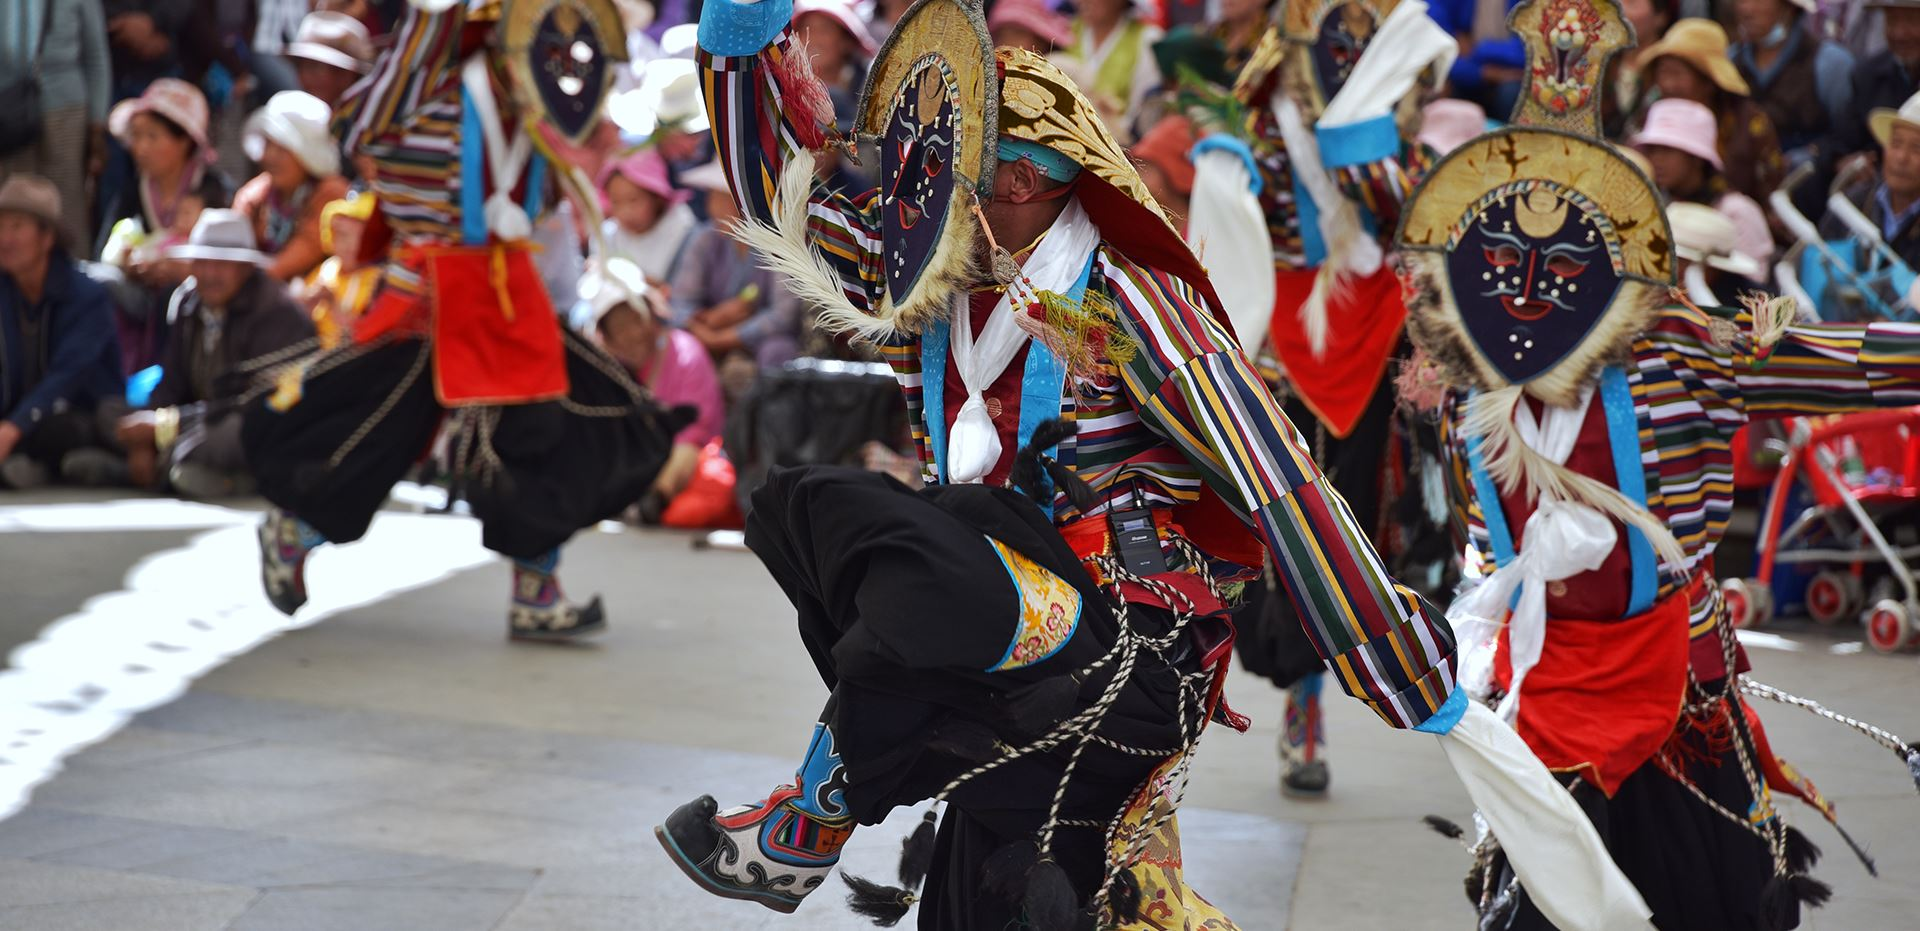 Tibet Tour during Shoton Festival in Lhasa 2020